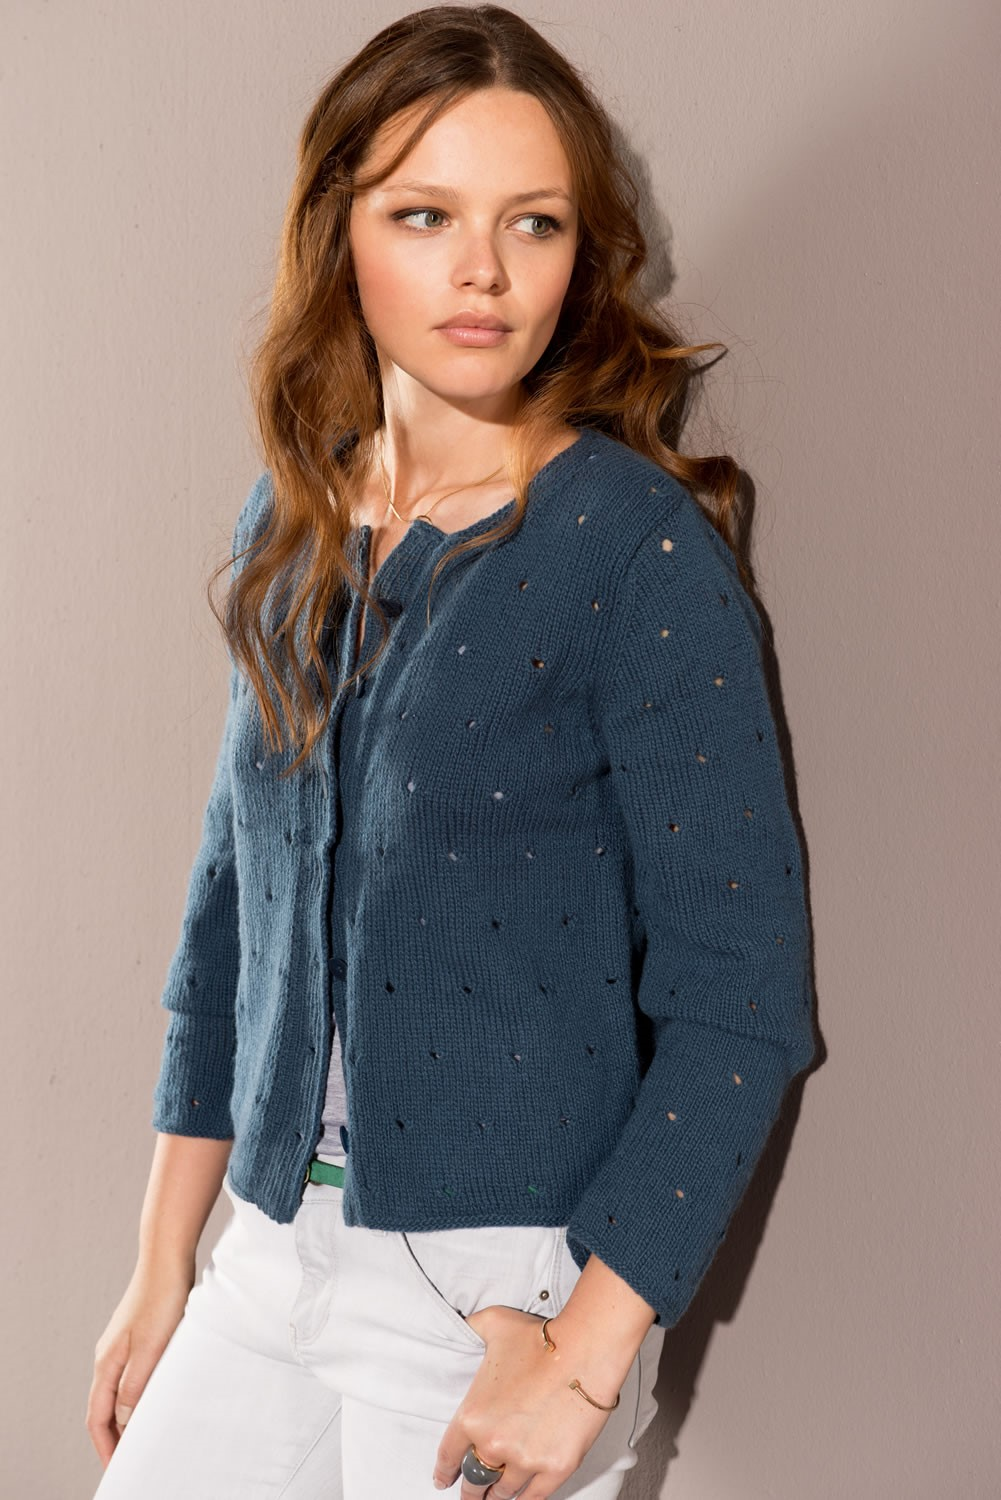 Lana Grossa JACKET in Solo Cashmere 110